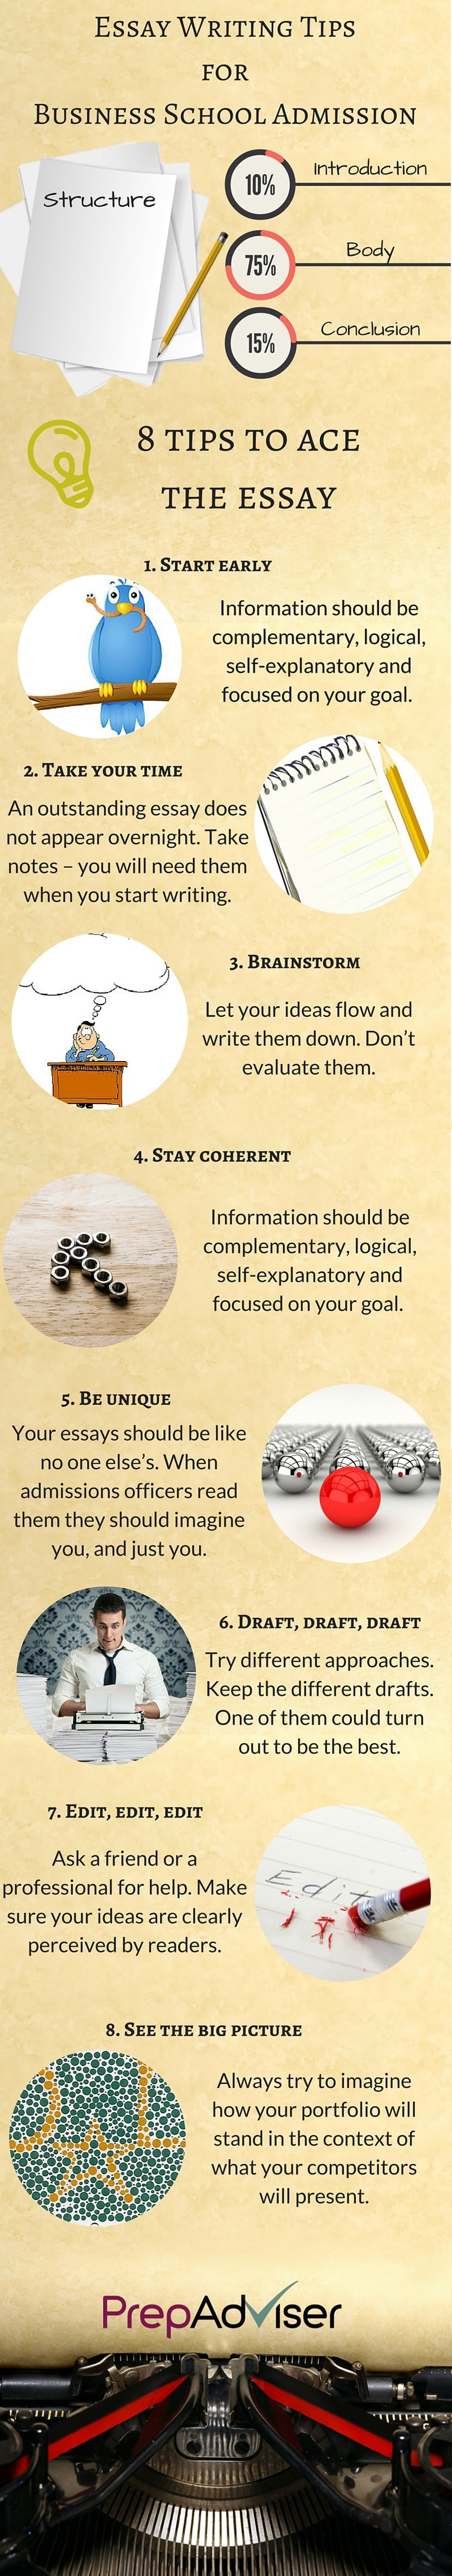 Essay Writing Tips for B-school admission